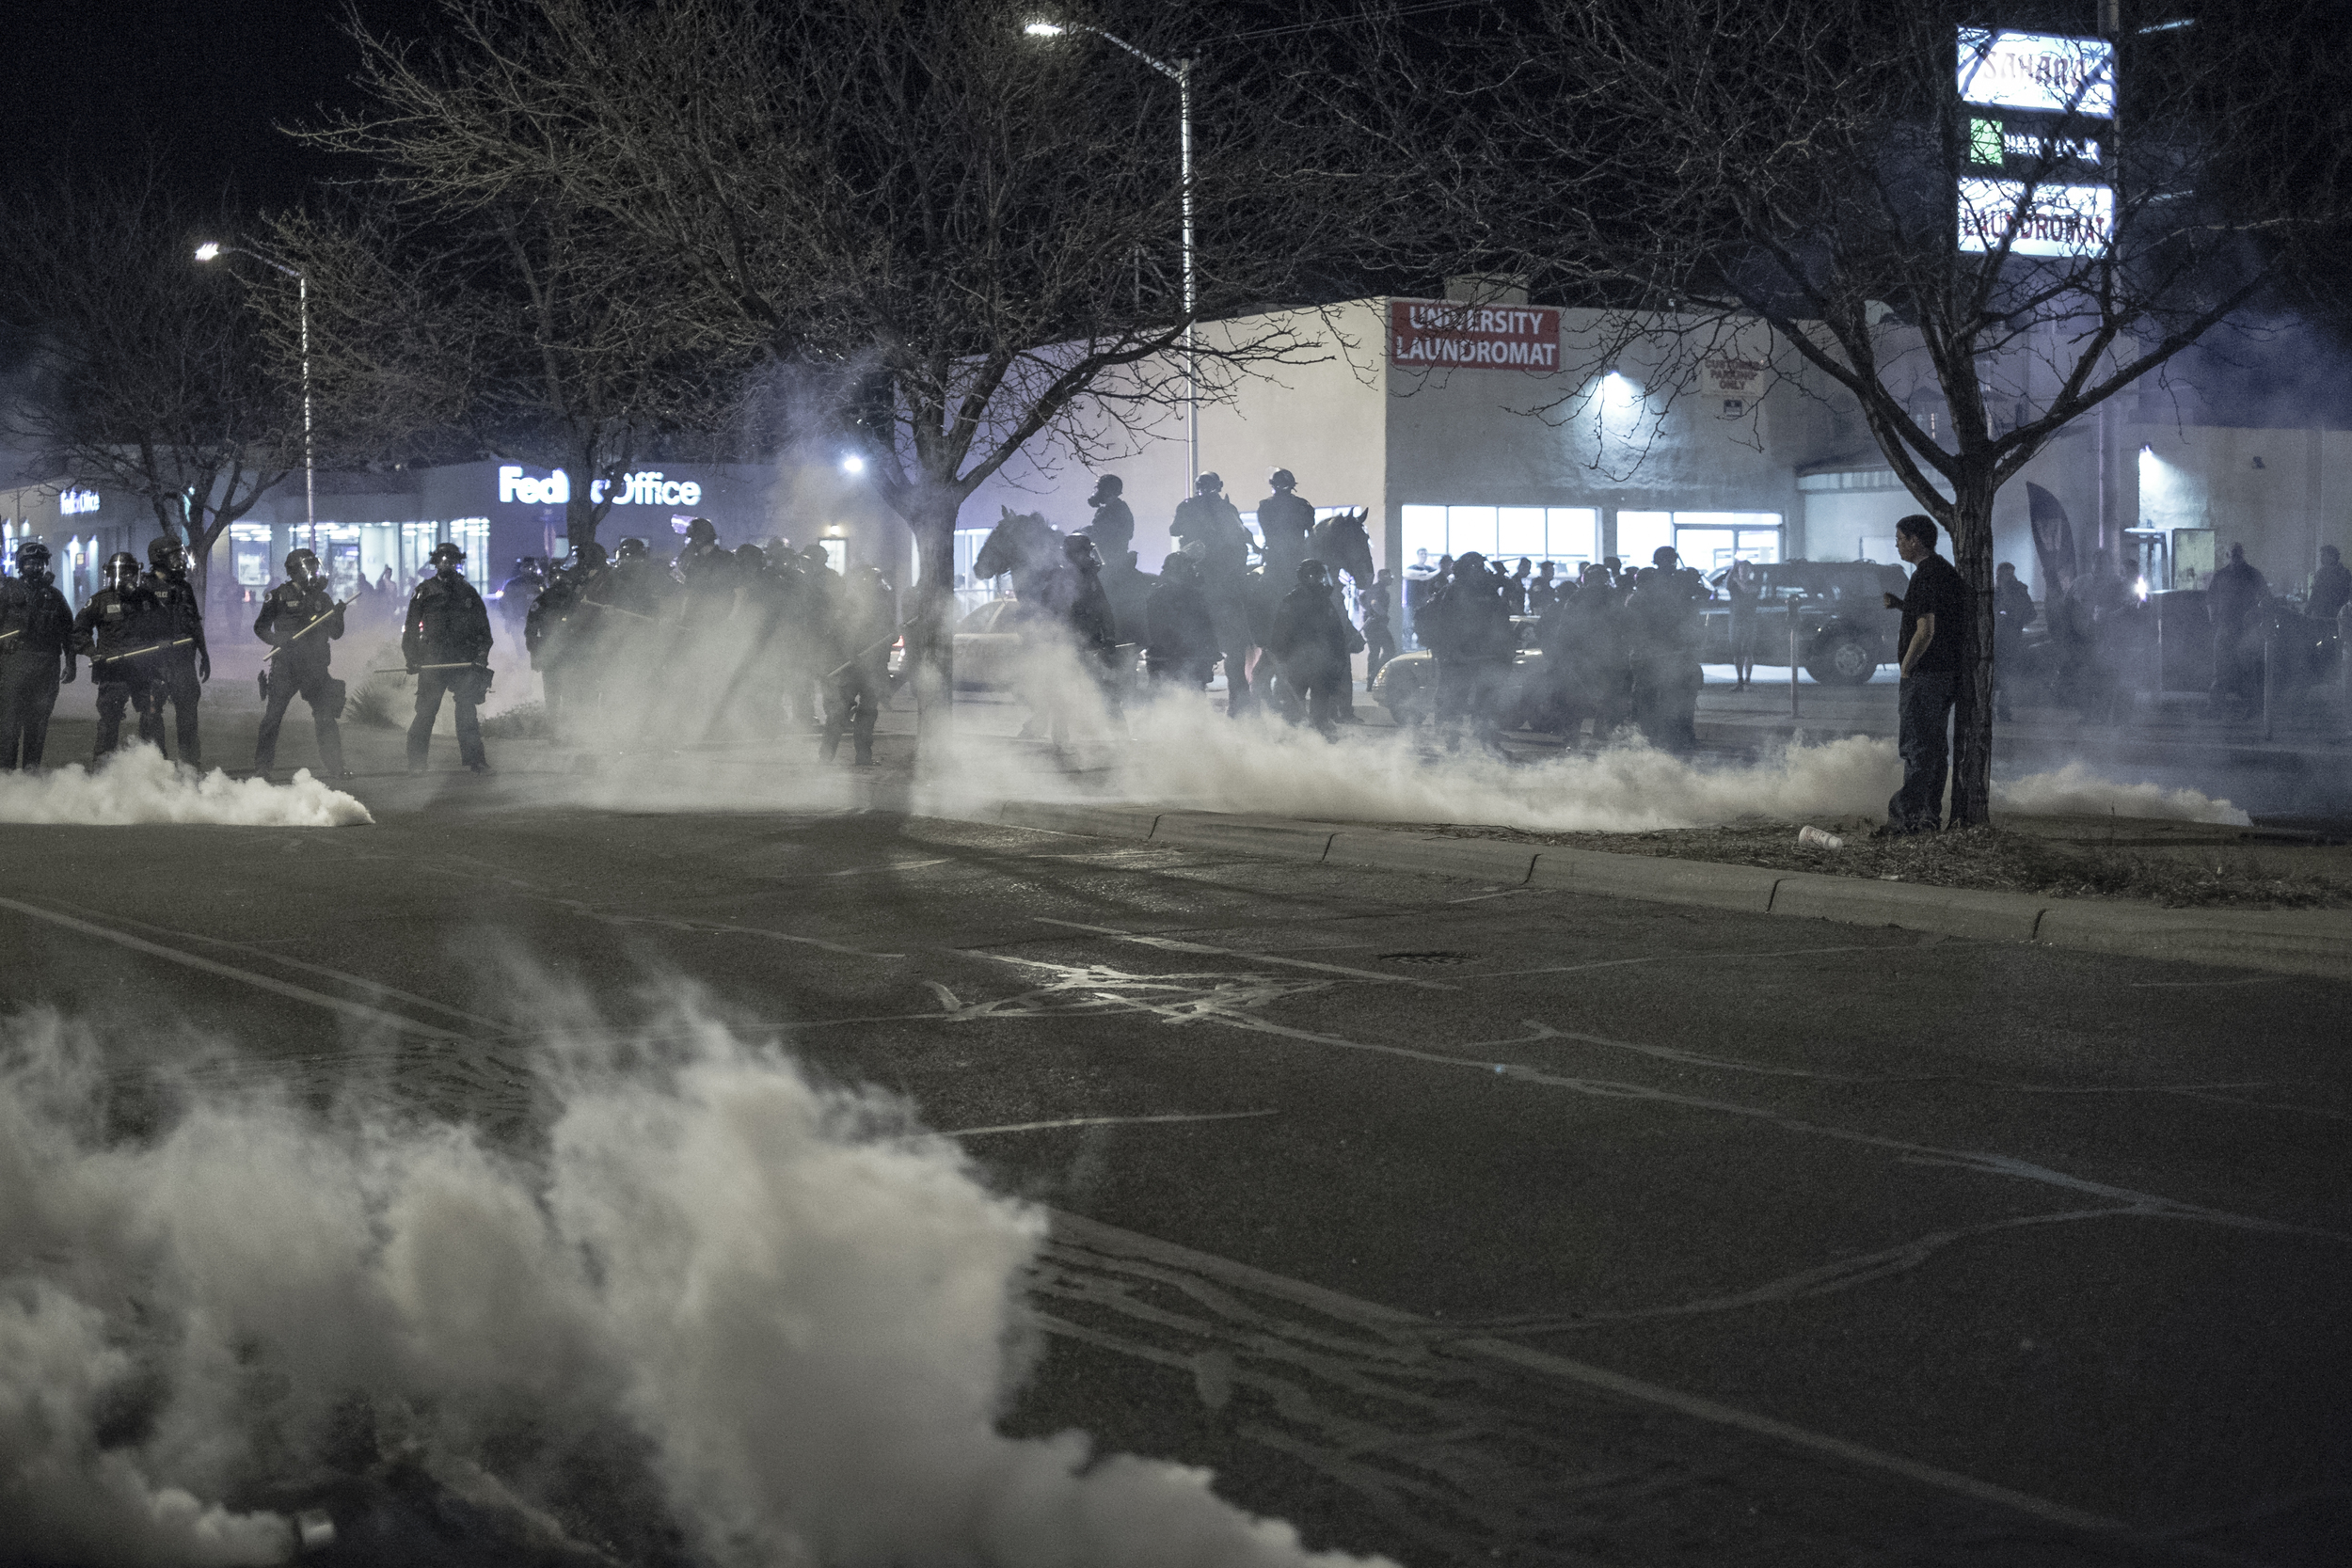 Albuquerque Police begin to throw tear gas at protesters on Central Avenue near the University of New Mexico.